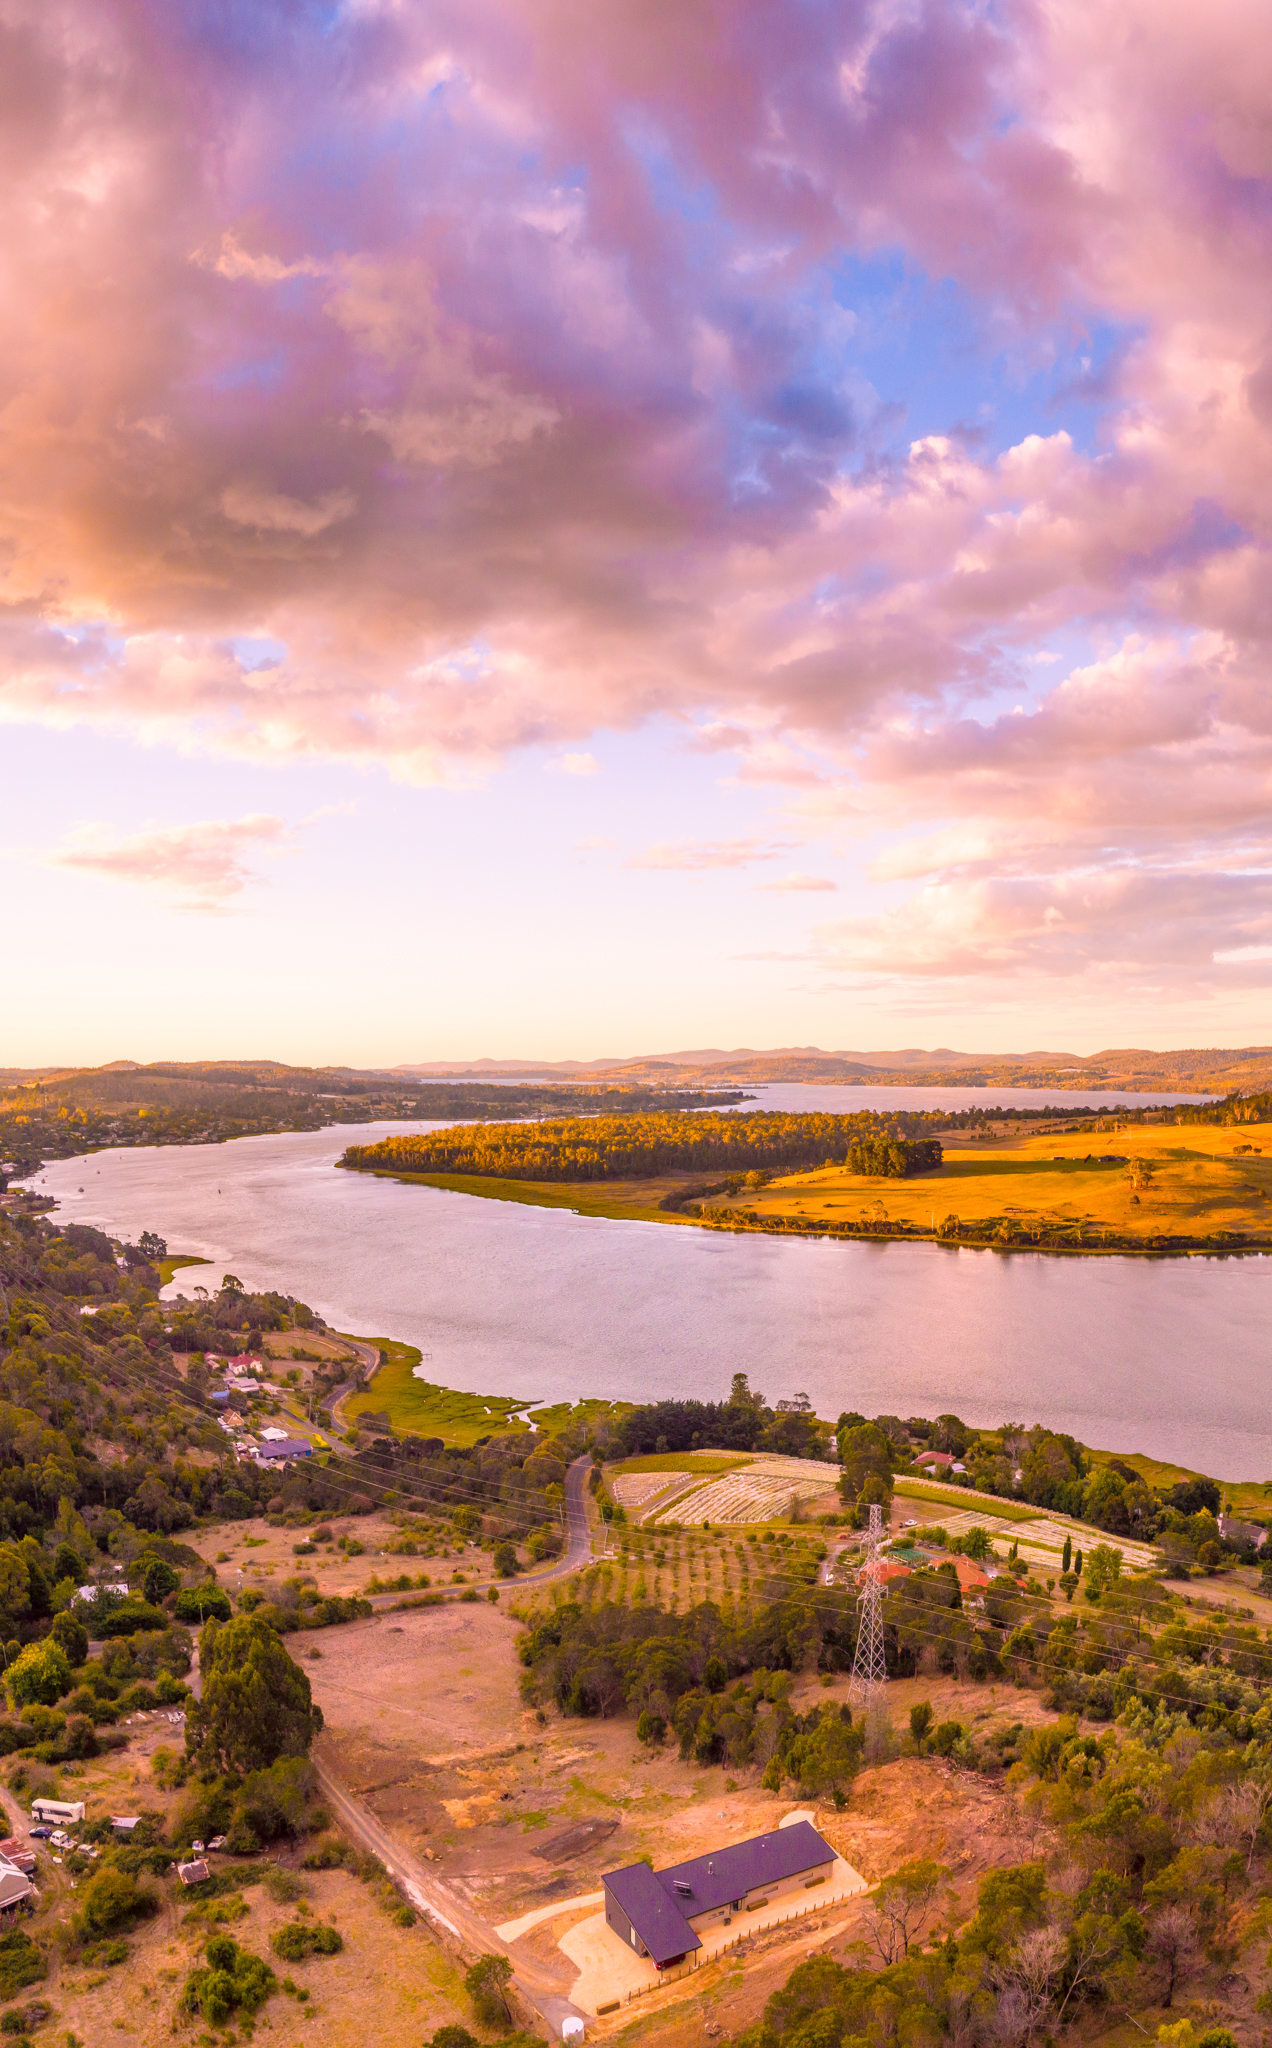 Brady's Lookout - 15 minutes from Launceston in the Tamar Valley